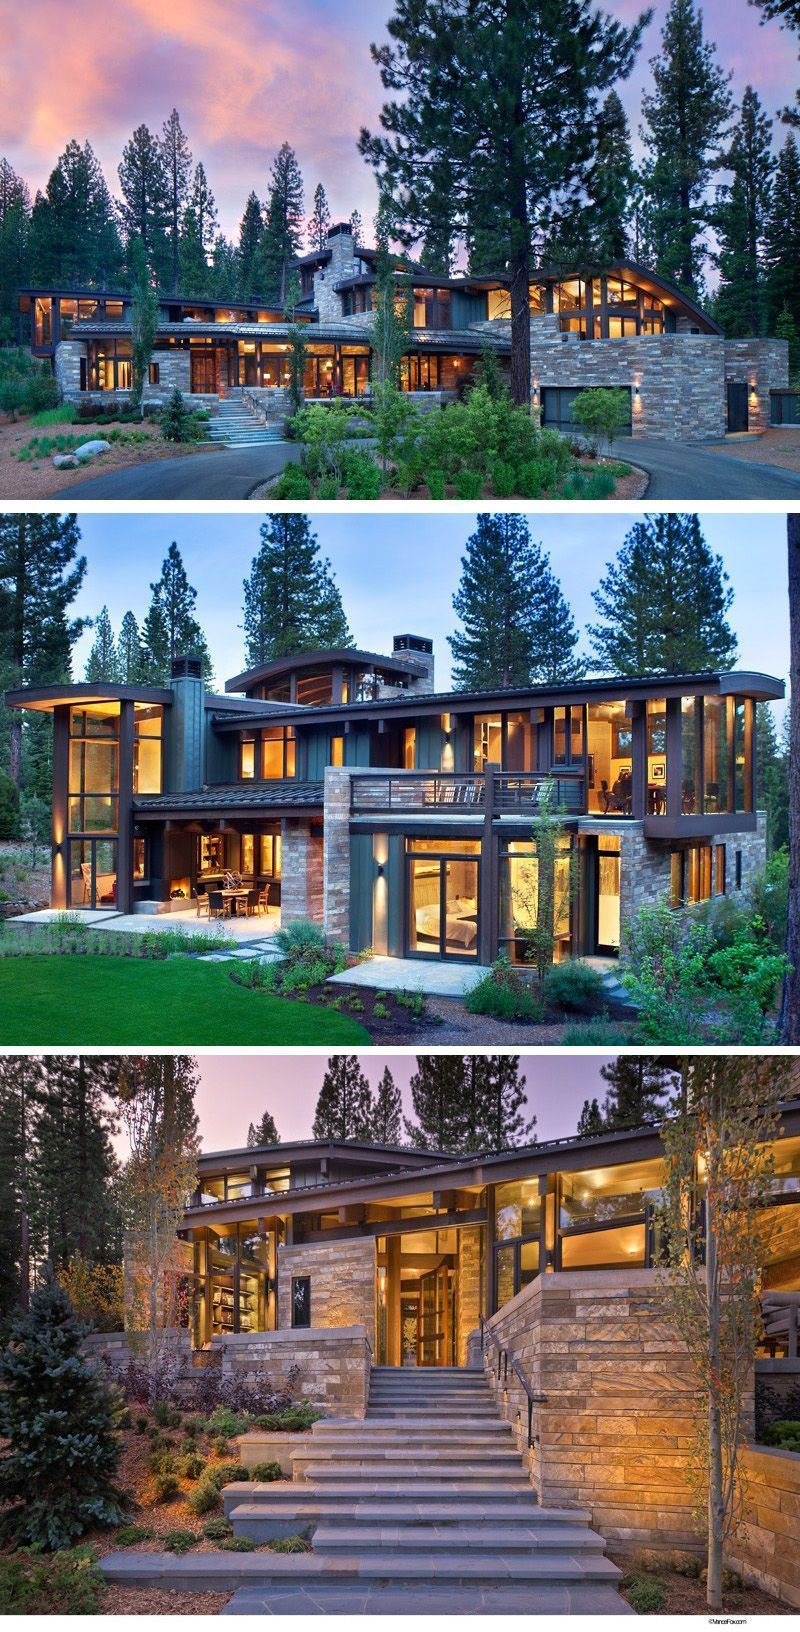 Pin by Architecturian on Apartment Ideas in 2019 | Modern house design,  House design, House styles